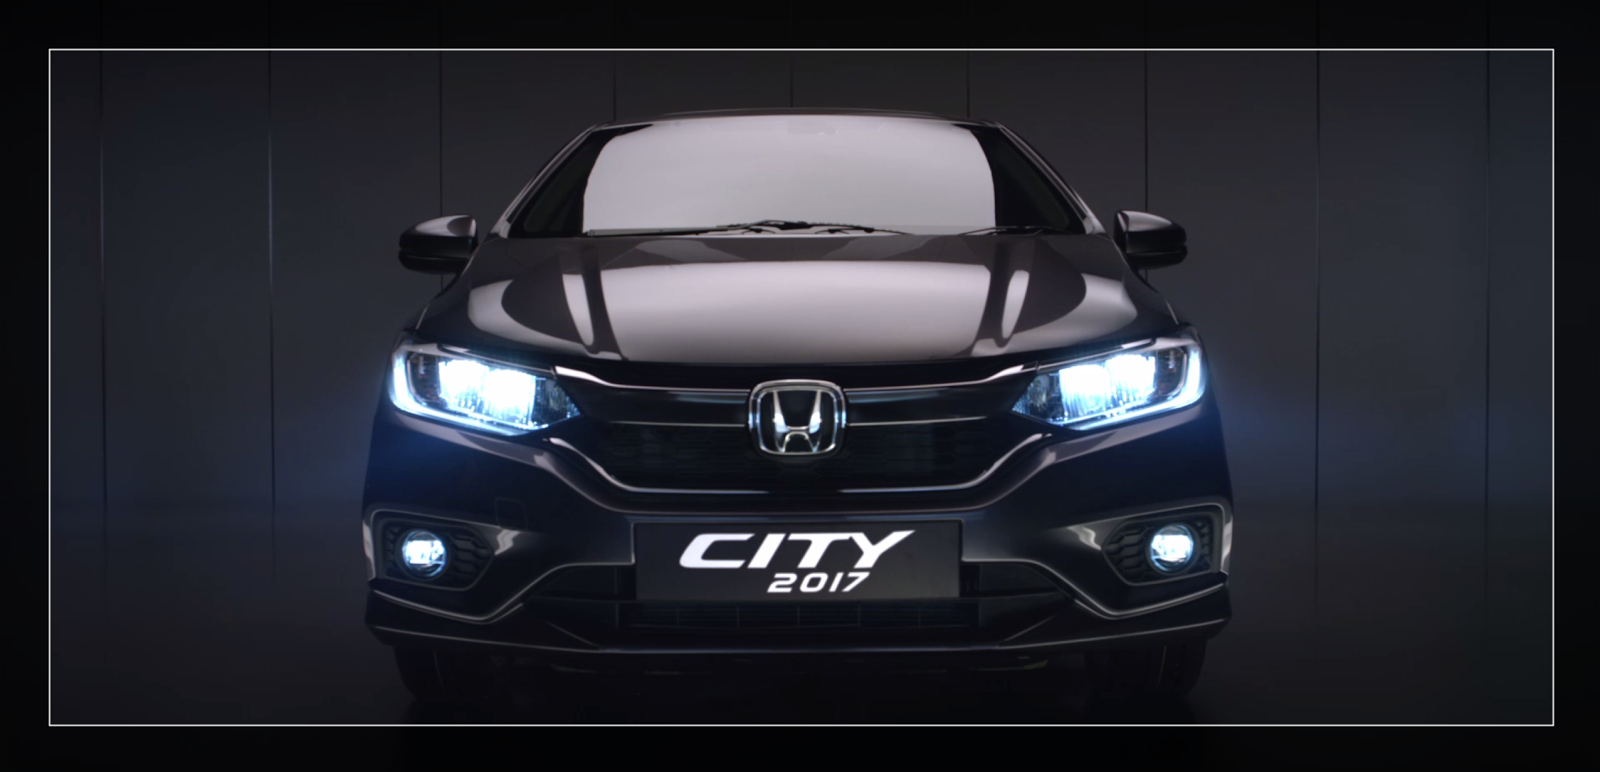 Honda CITY Facelift India 2017 Official Images